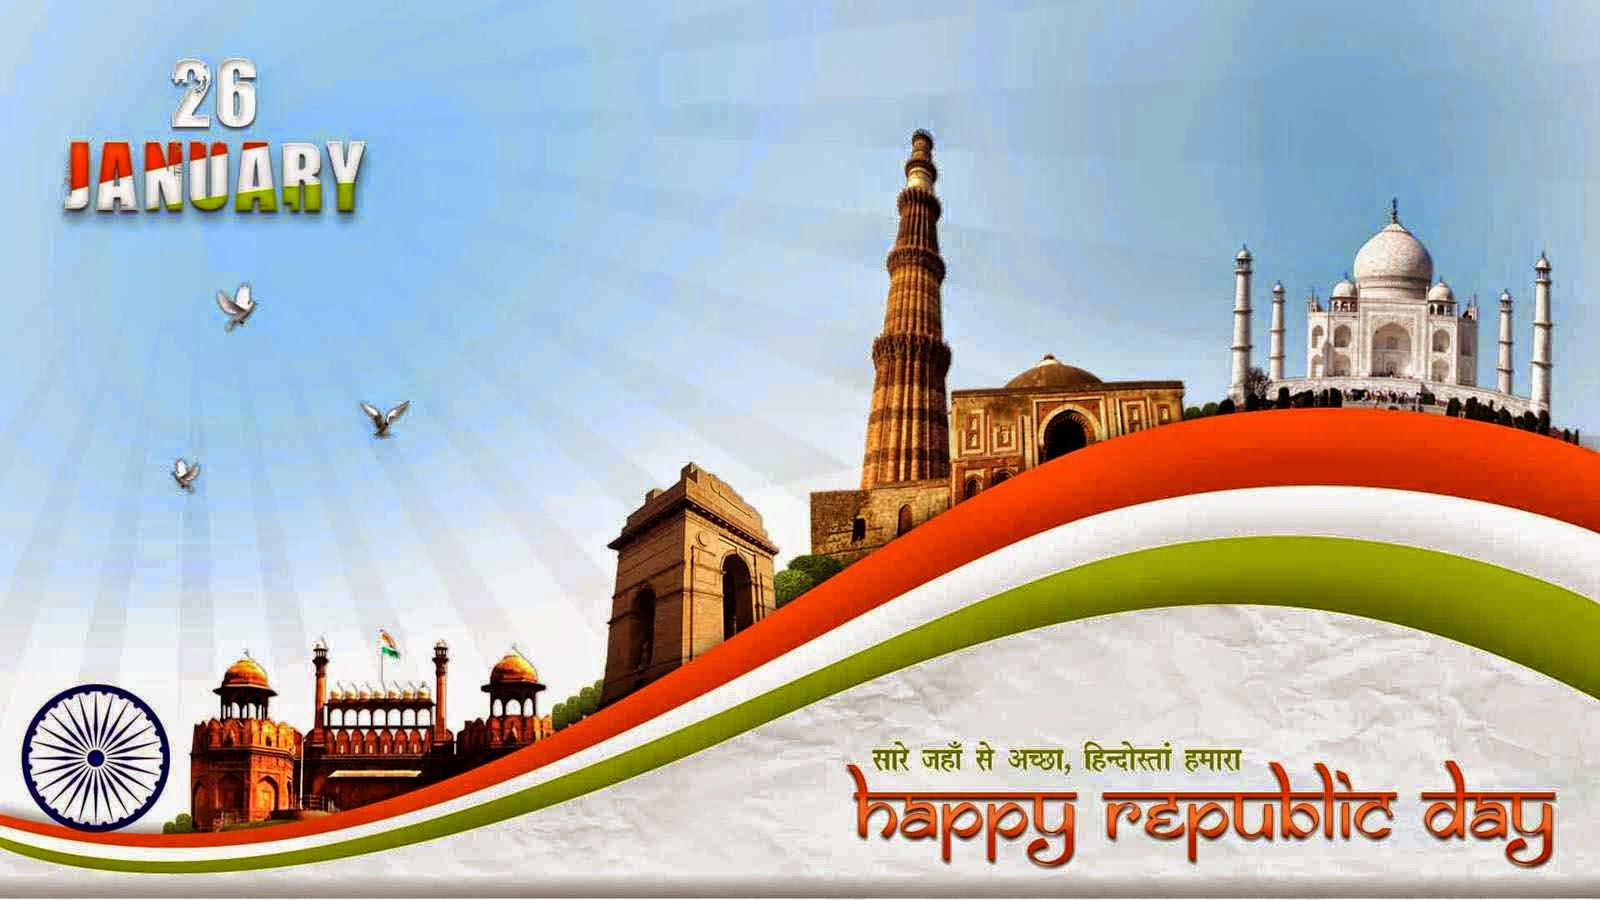 republic day images gallery